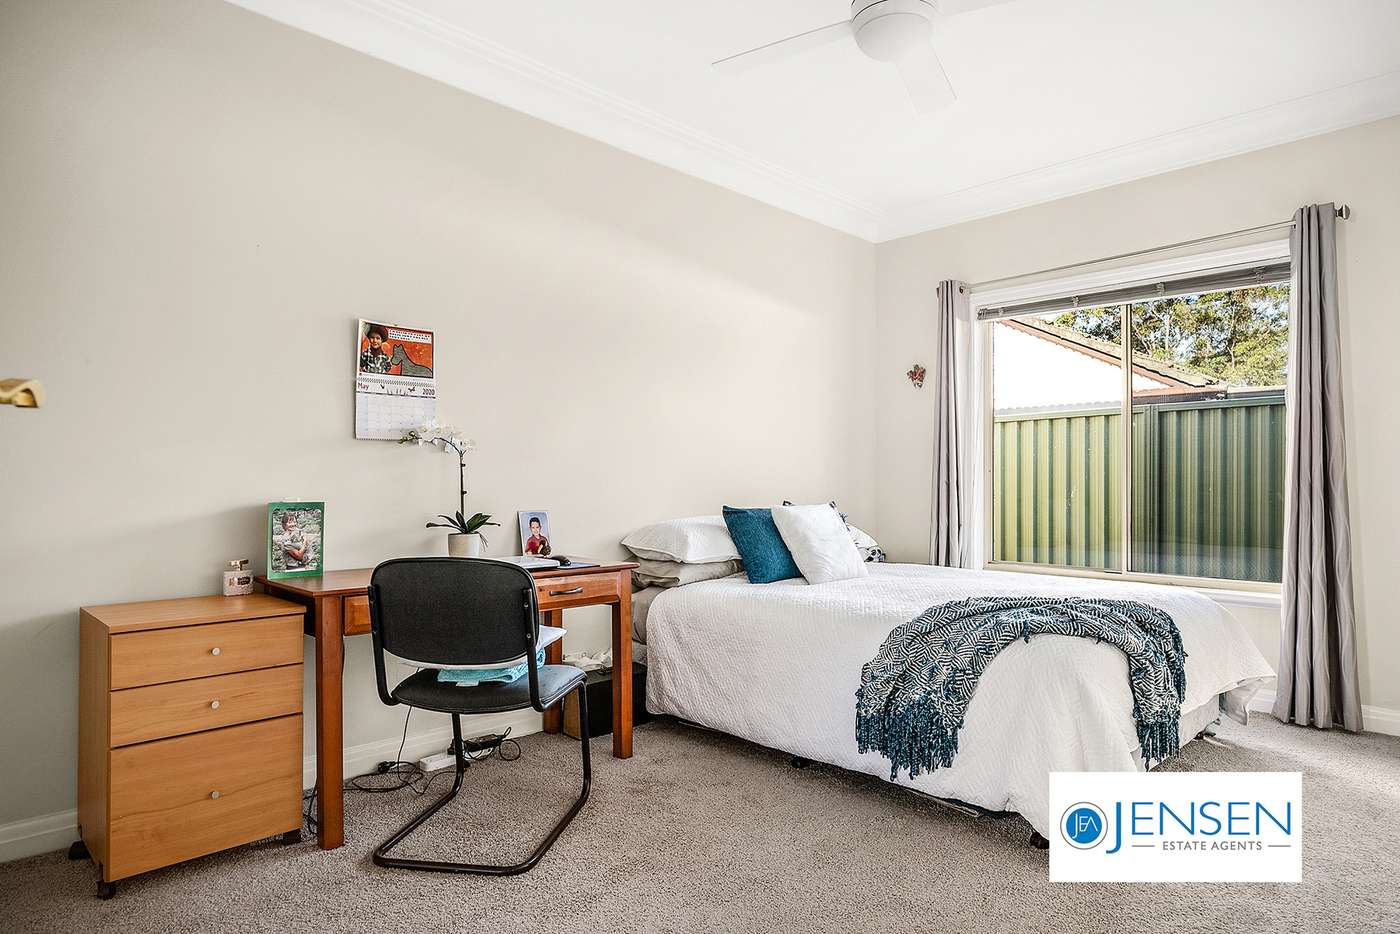 Seventh view of Homely house listing, 1/454 Windsor Road, Baulkham Hills NSW 2153